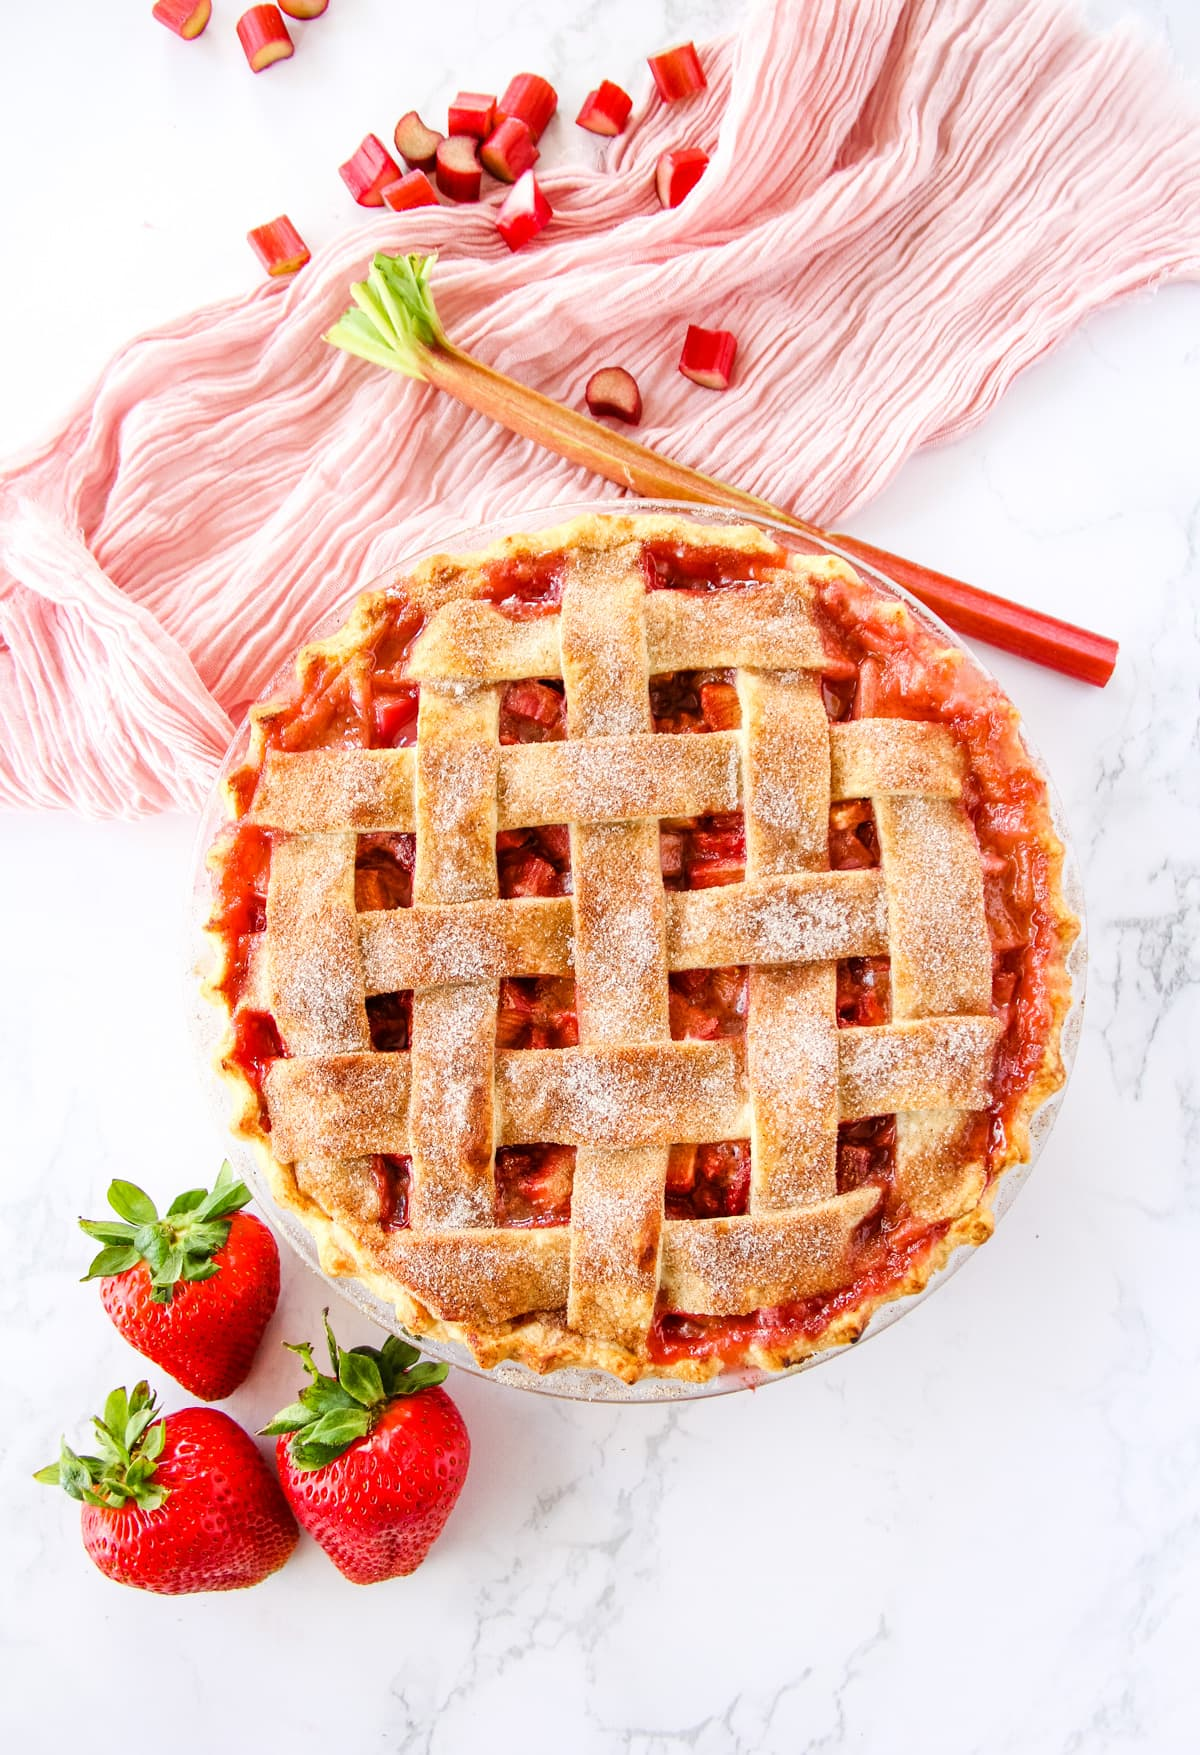 a top down view of a strawberry rhubarb pie with a lattice crust. in the background is a soft pink napkin, chopped rhubarb and three strawberries